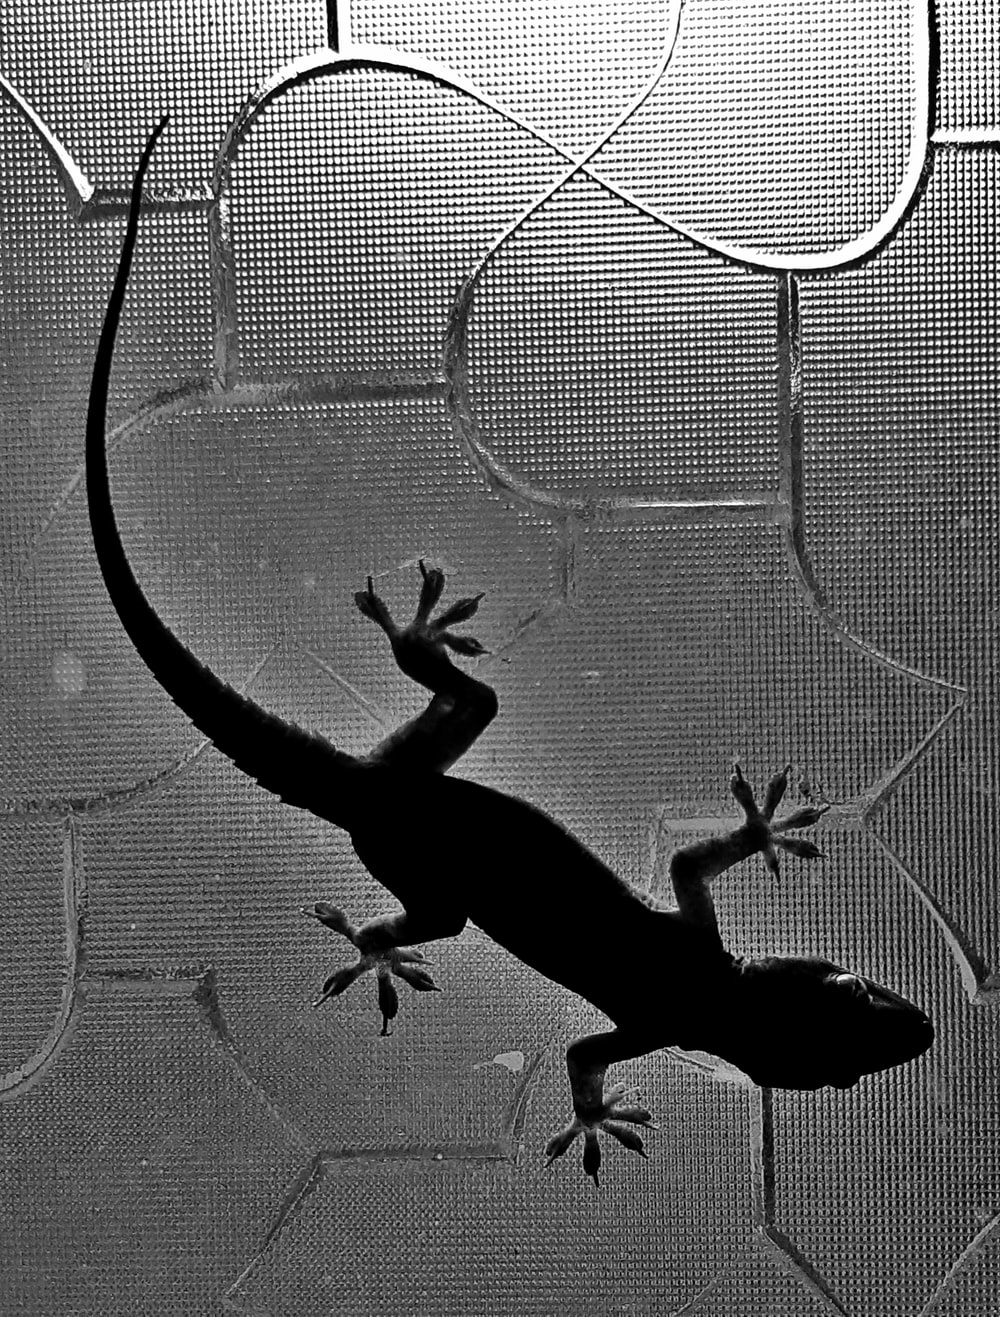 silhouette of lizard on glass